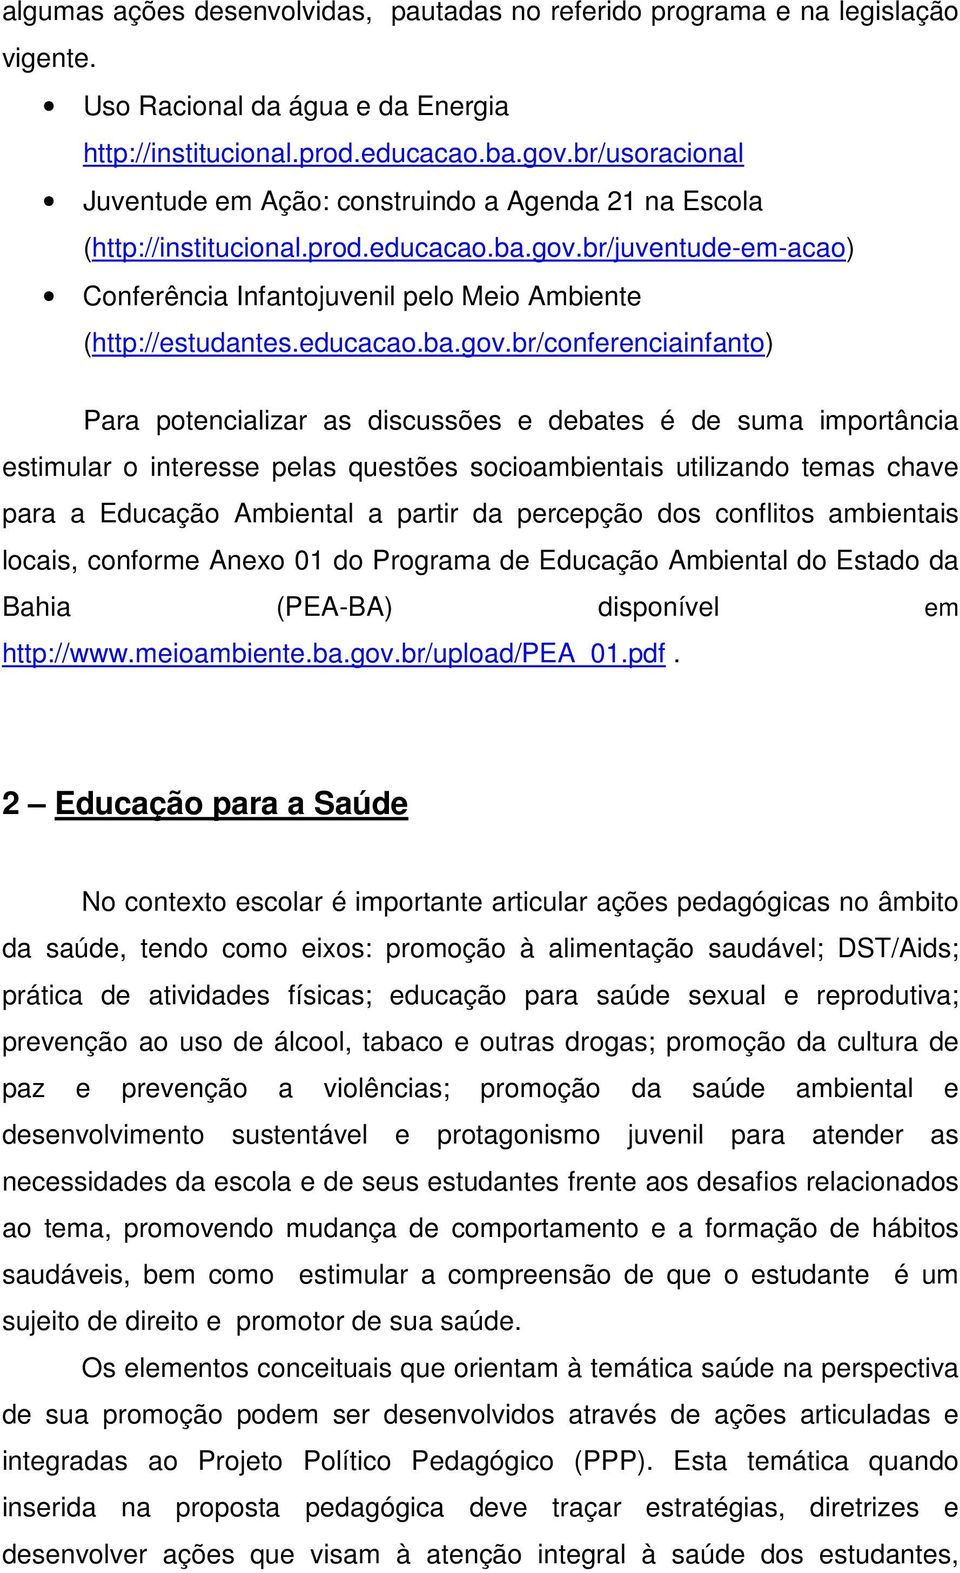 educacao.ba.gov.